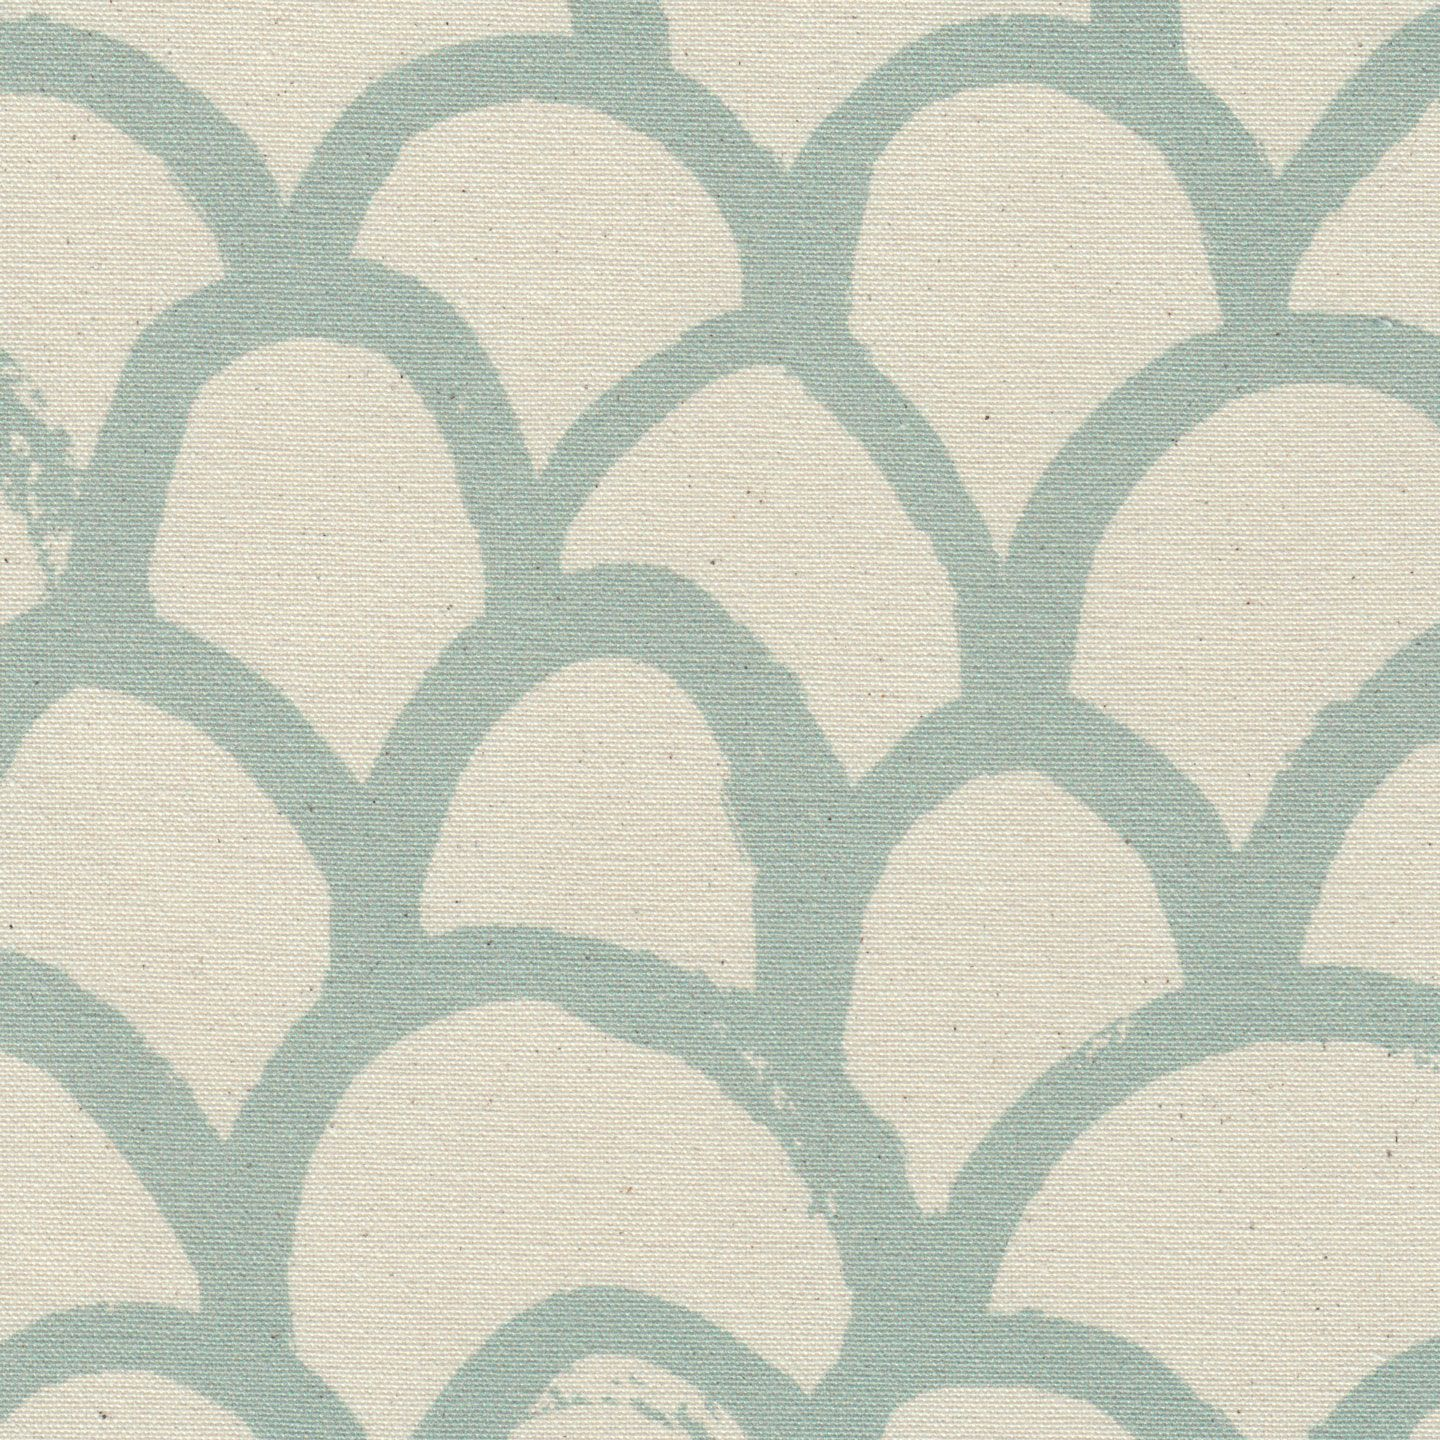 Arch in Robins Egg | Clay McLaurin #textiles #fabric #cotton #blue